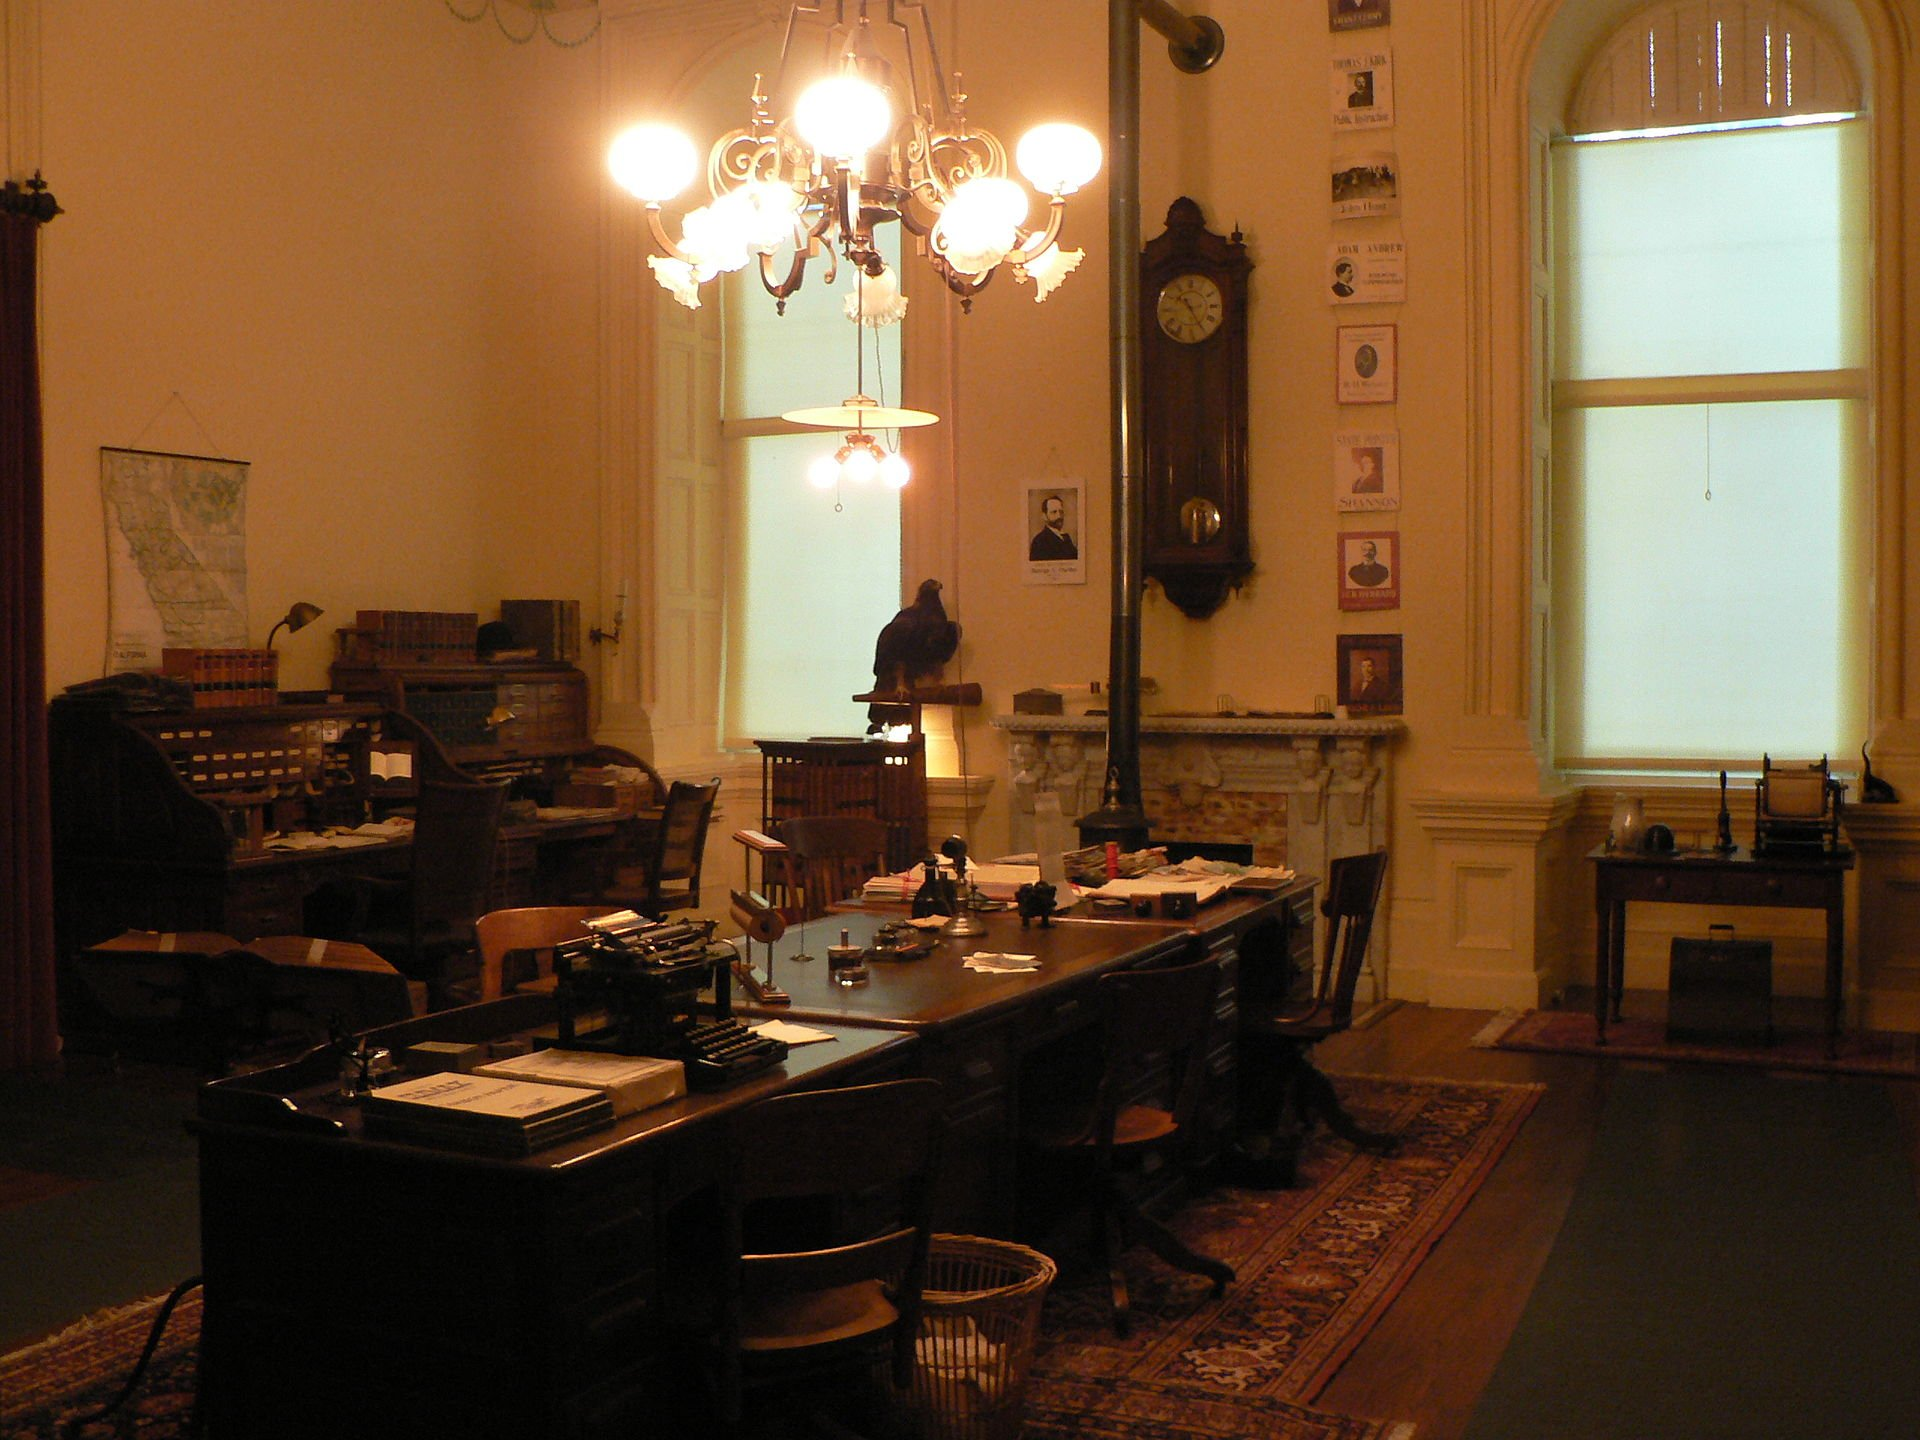 A number of historic rooms were set aside as museum exhibits during the Capitol's restoration in the 1970s and 80s. The California Secretary of State's office, for example, was restored to look as it did in 1902. Wikimedia.